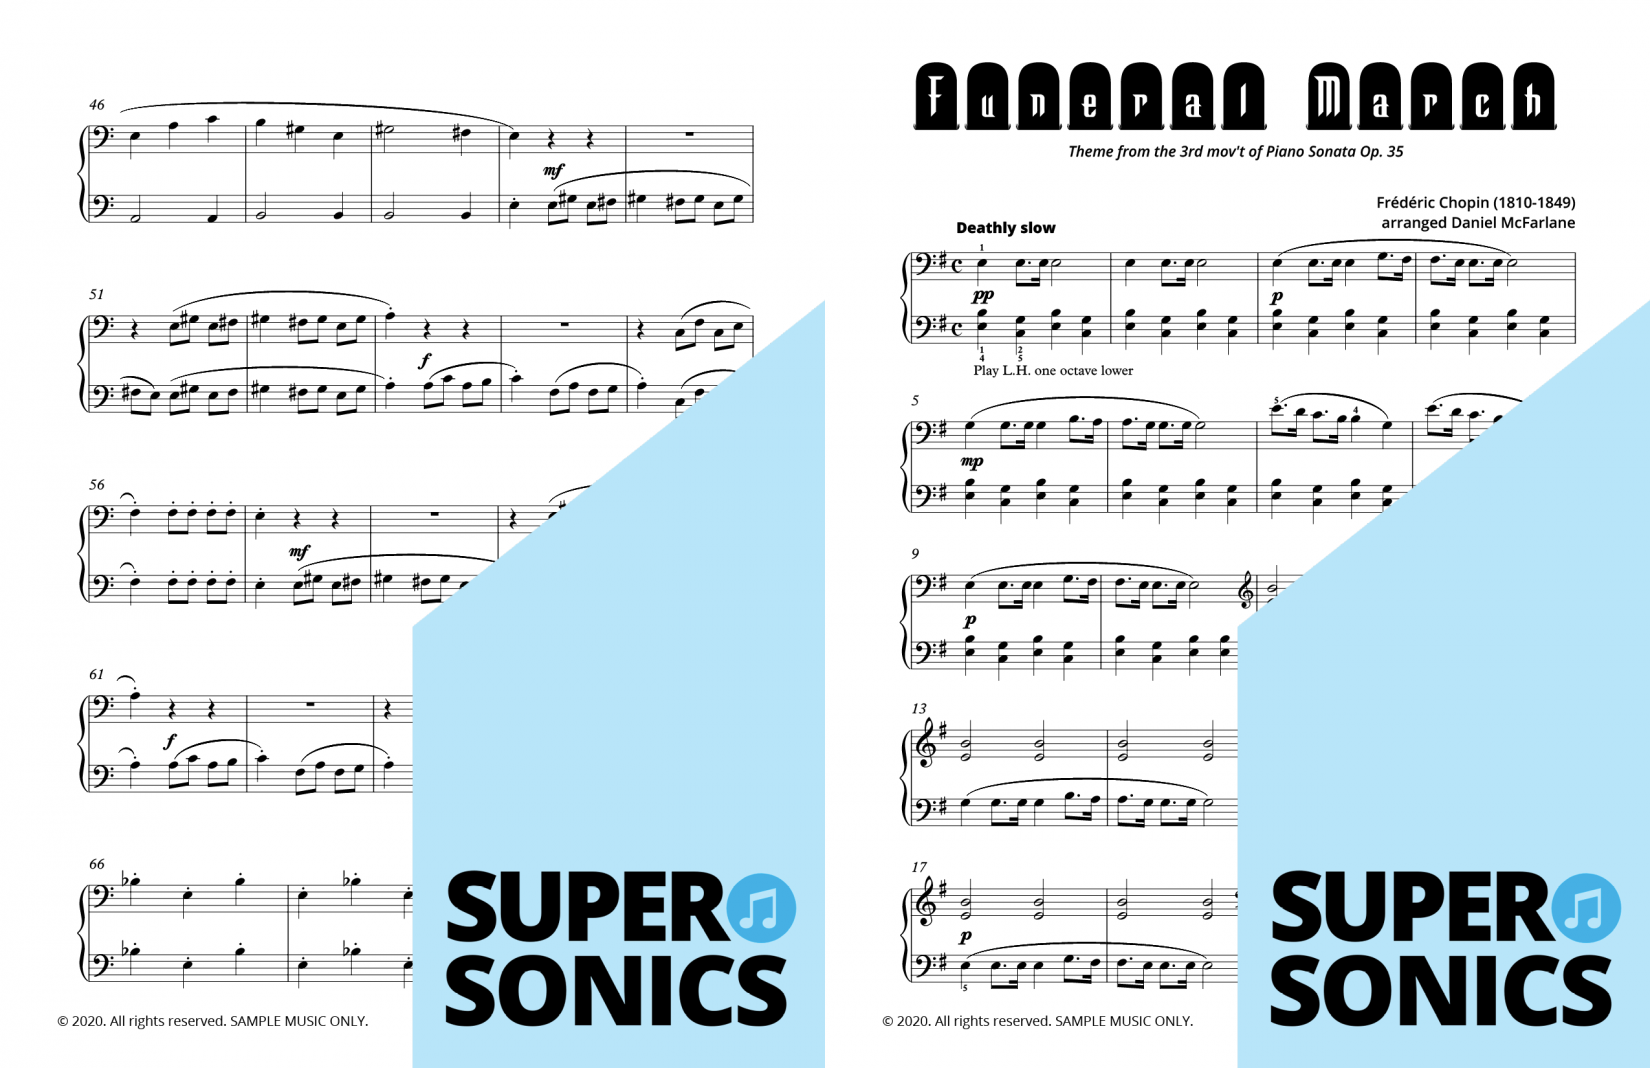 Supersonics Piano Method Level 4 Arrangements sample